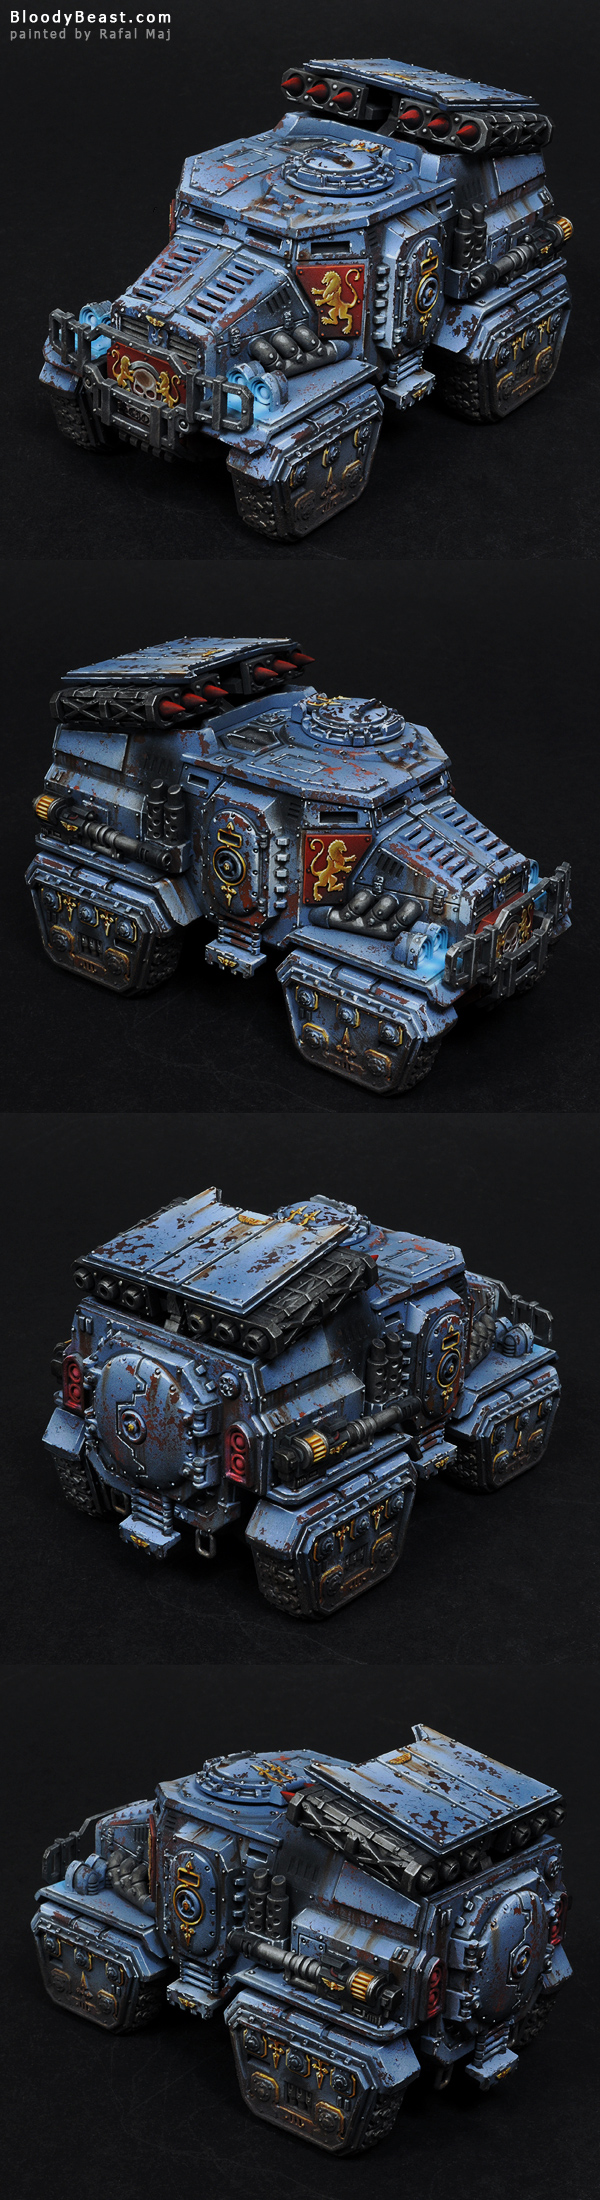 Astra Militarum Taurox Prime painted by Rafal Maj (BloodyBeast.com)